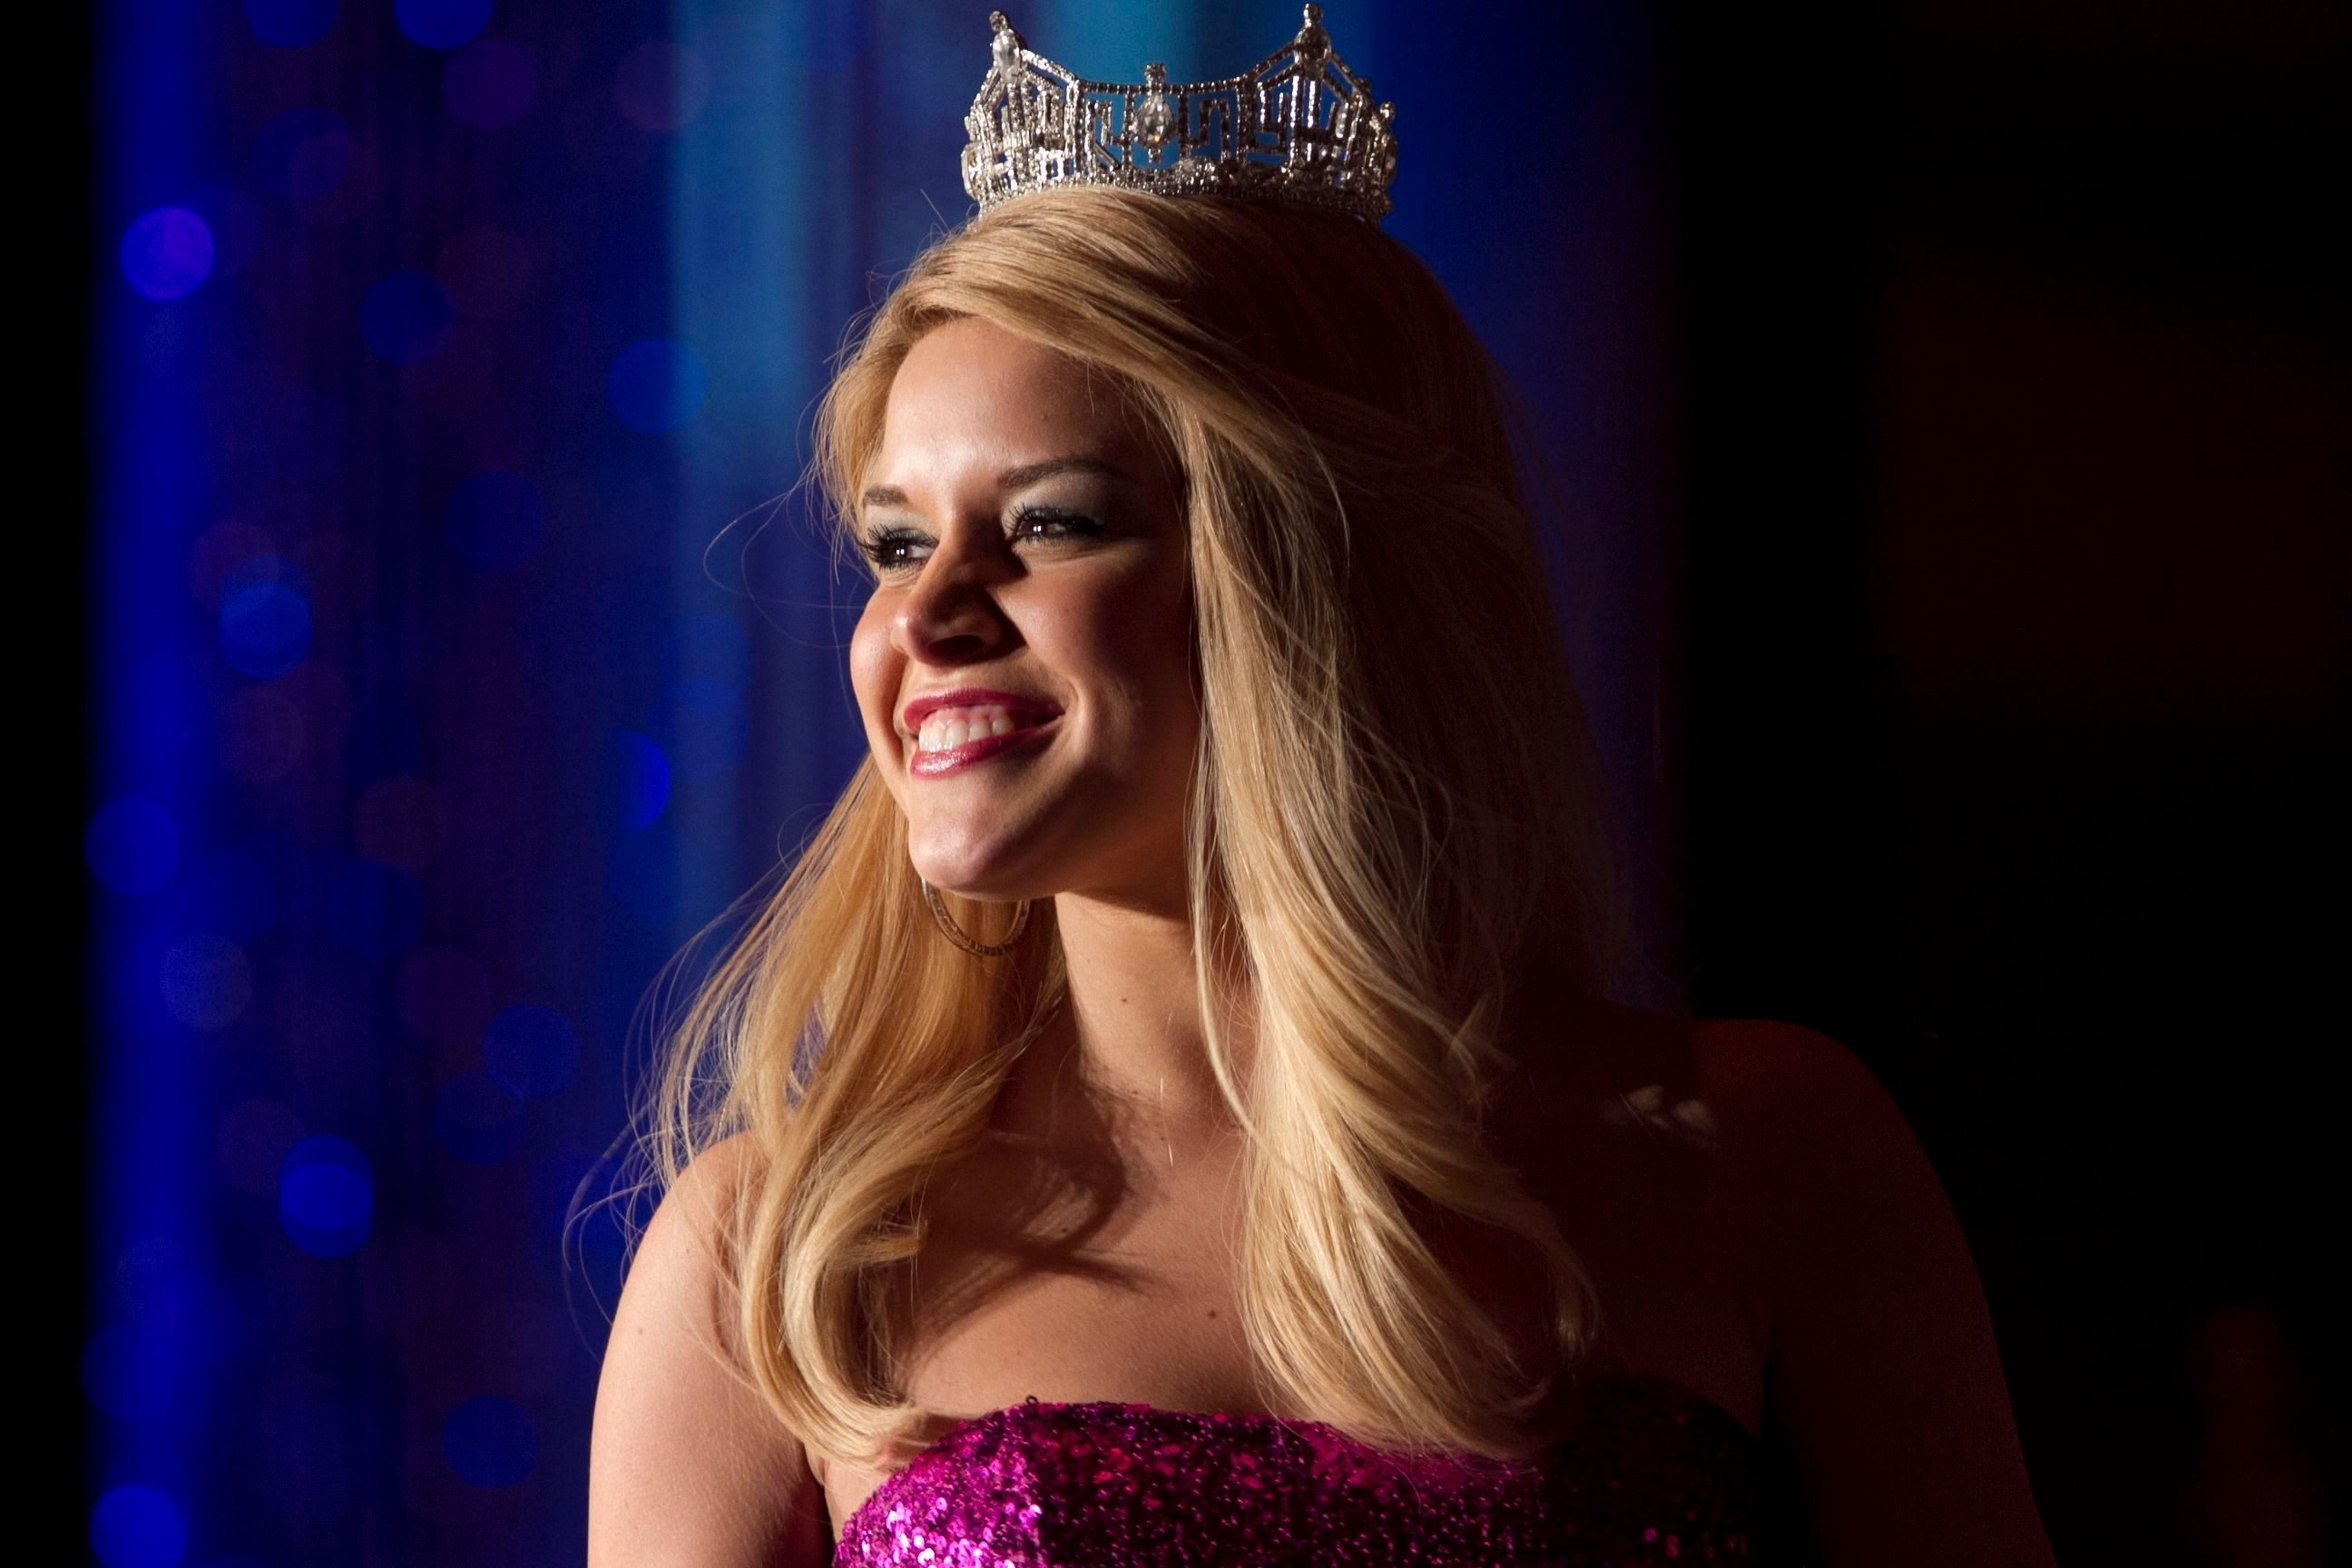 Mandatory Credit: Photo by Nati Harnik/AP/Shutterstock (6293662g) Teresa Scanlan Teresa Scanlan, Miss America 2011, at a dinner event on the last day of her homecoming tour of Nebraska, in La Vista, Neb Miss America Homecoming, La Vista, USA